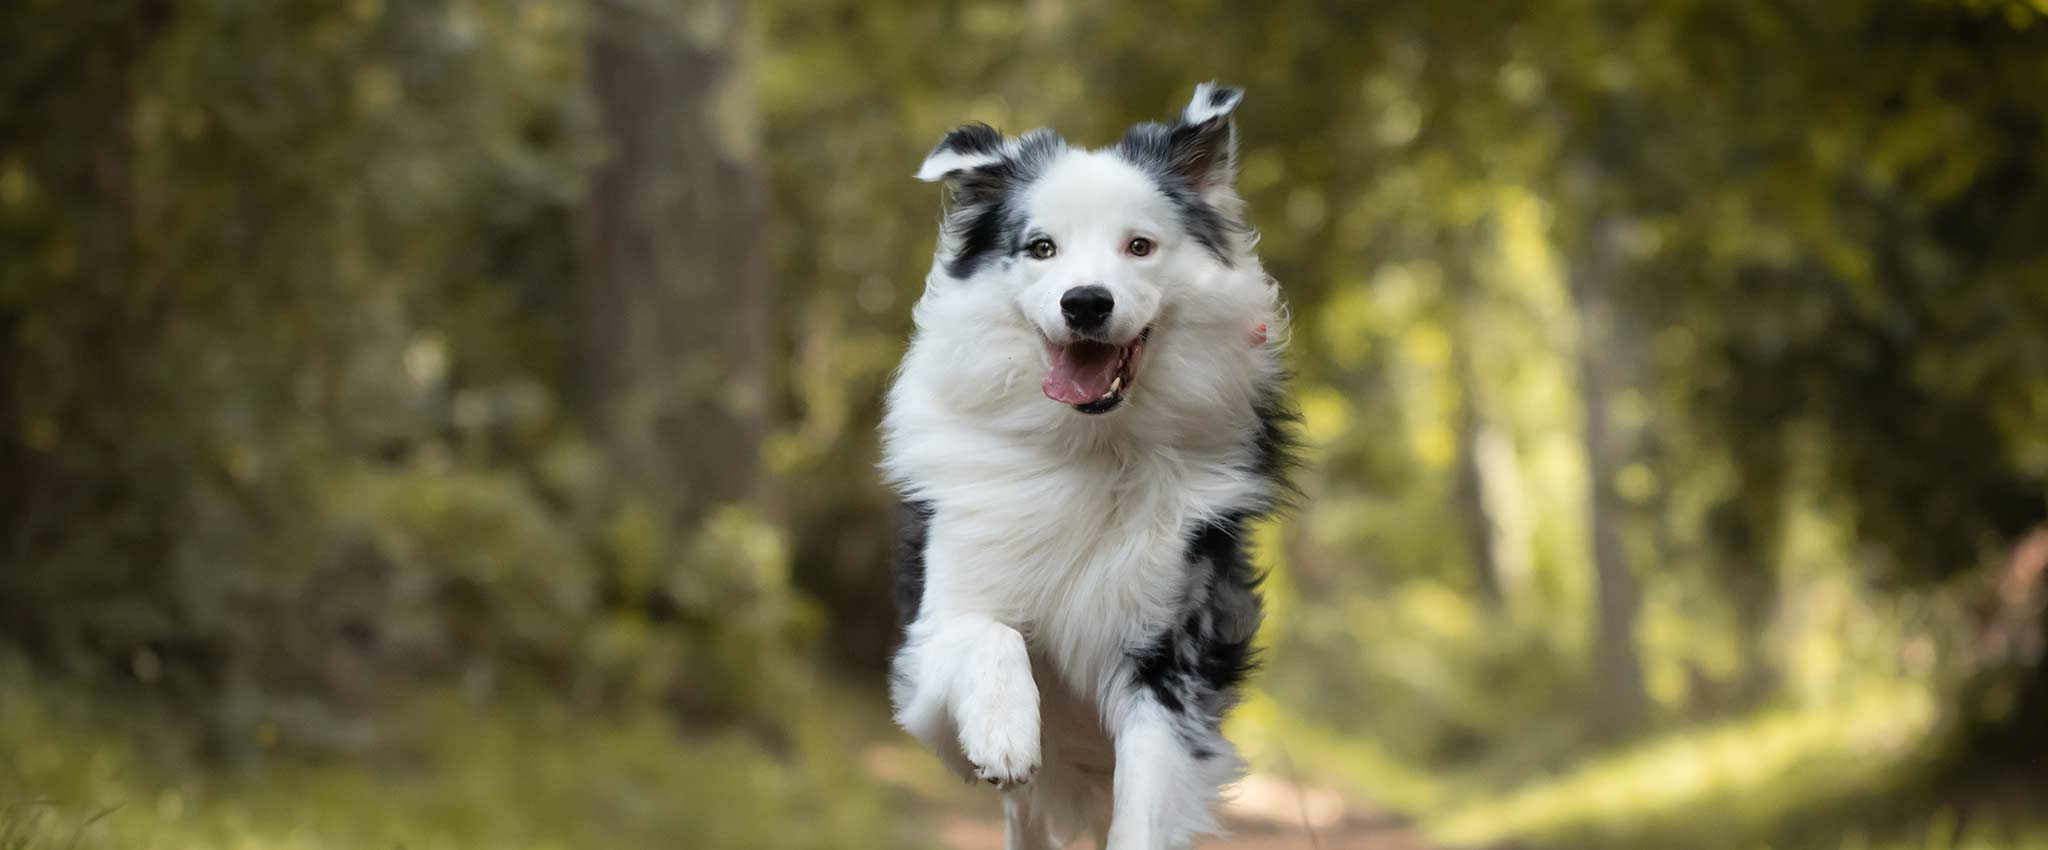 A white and black dog on a run in the outdoors